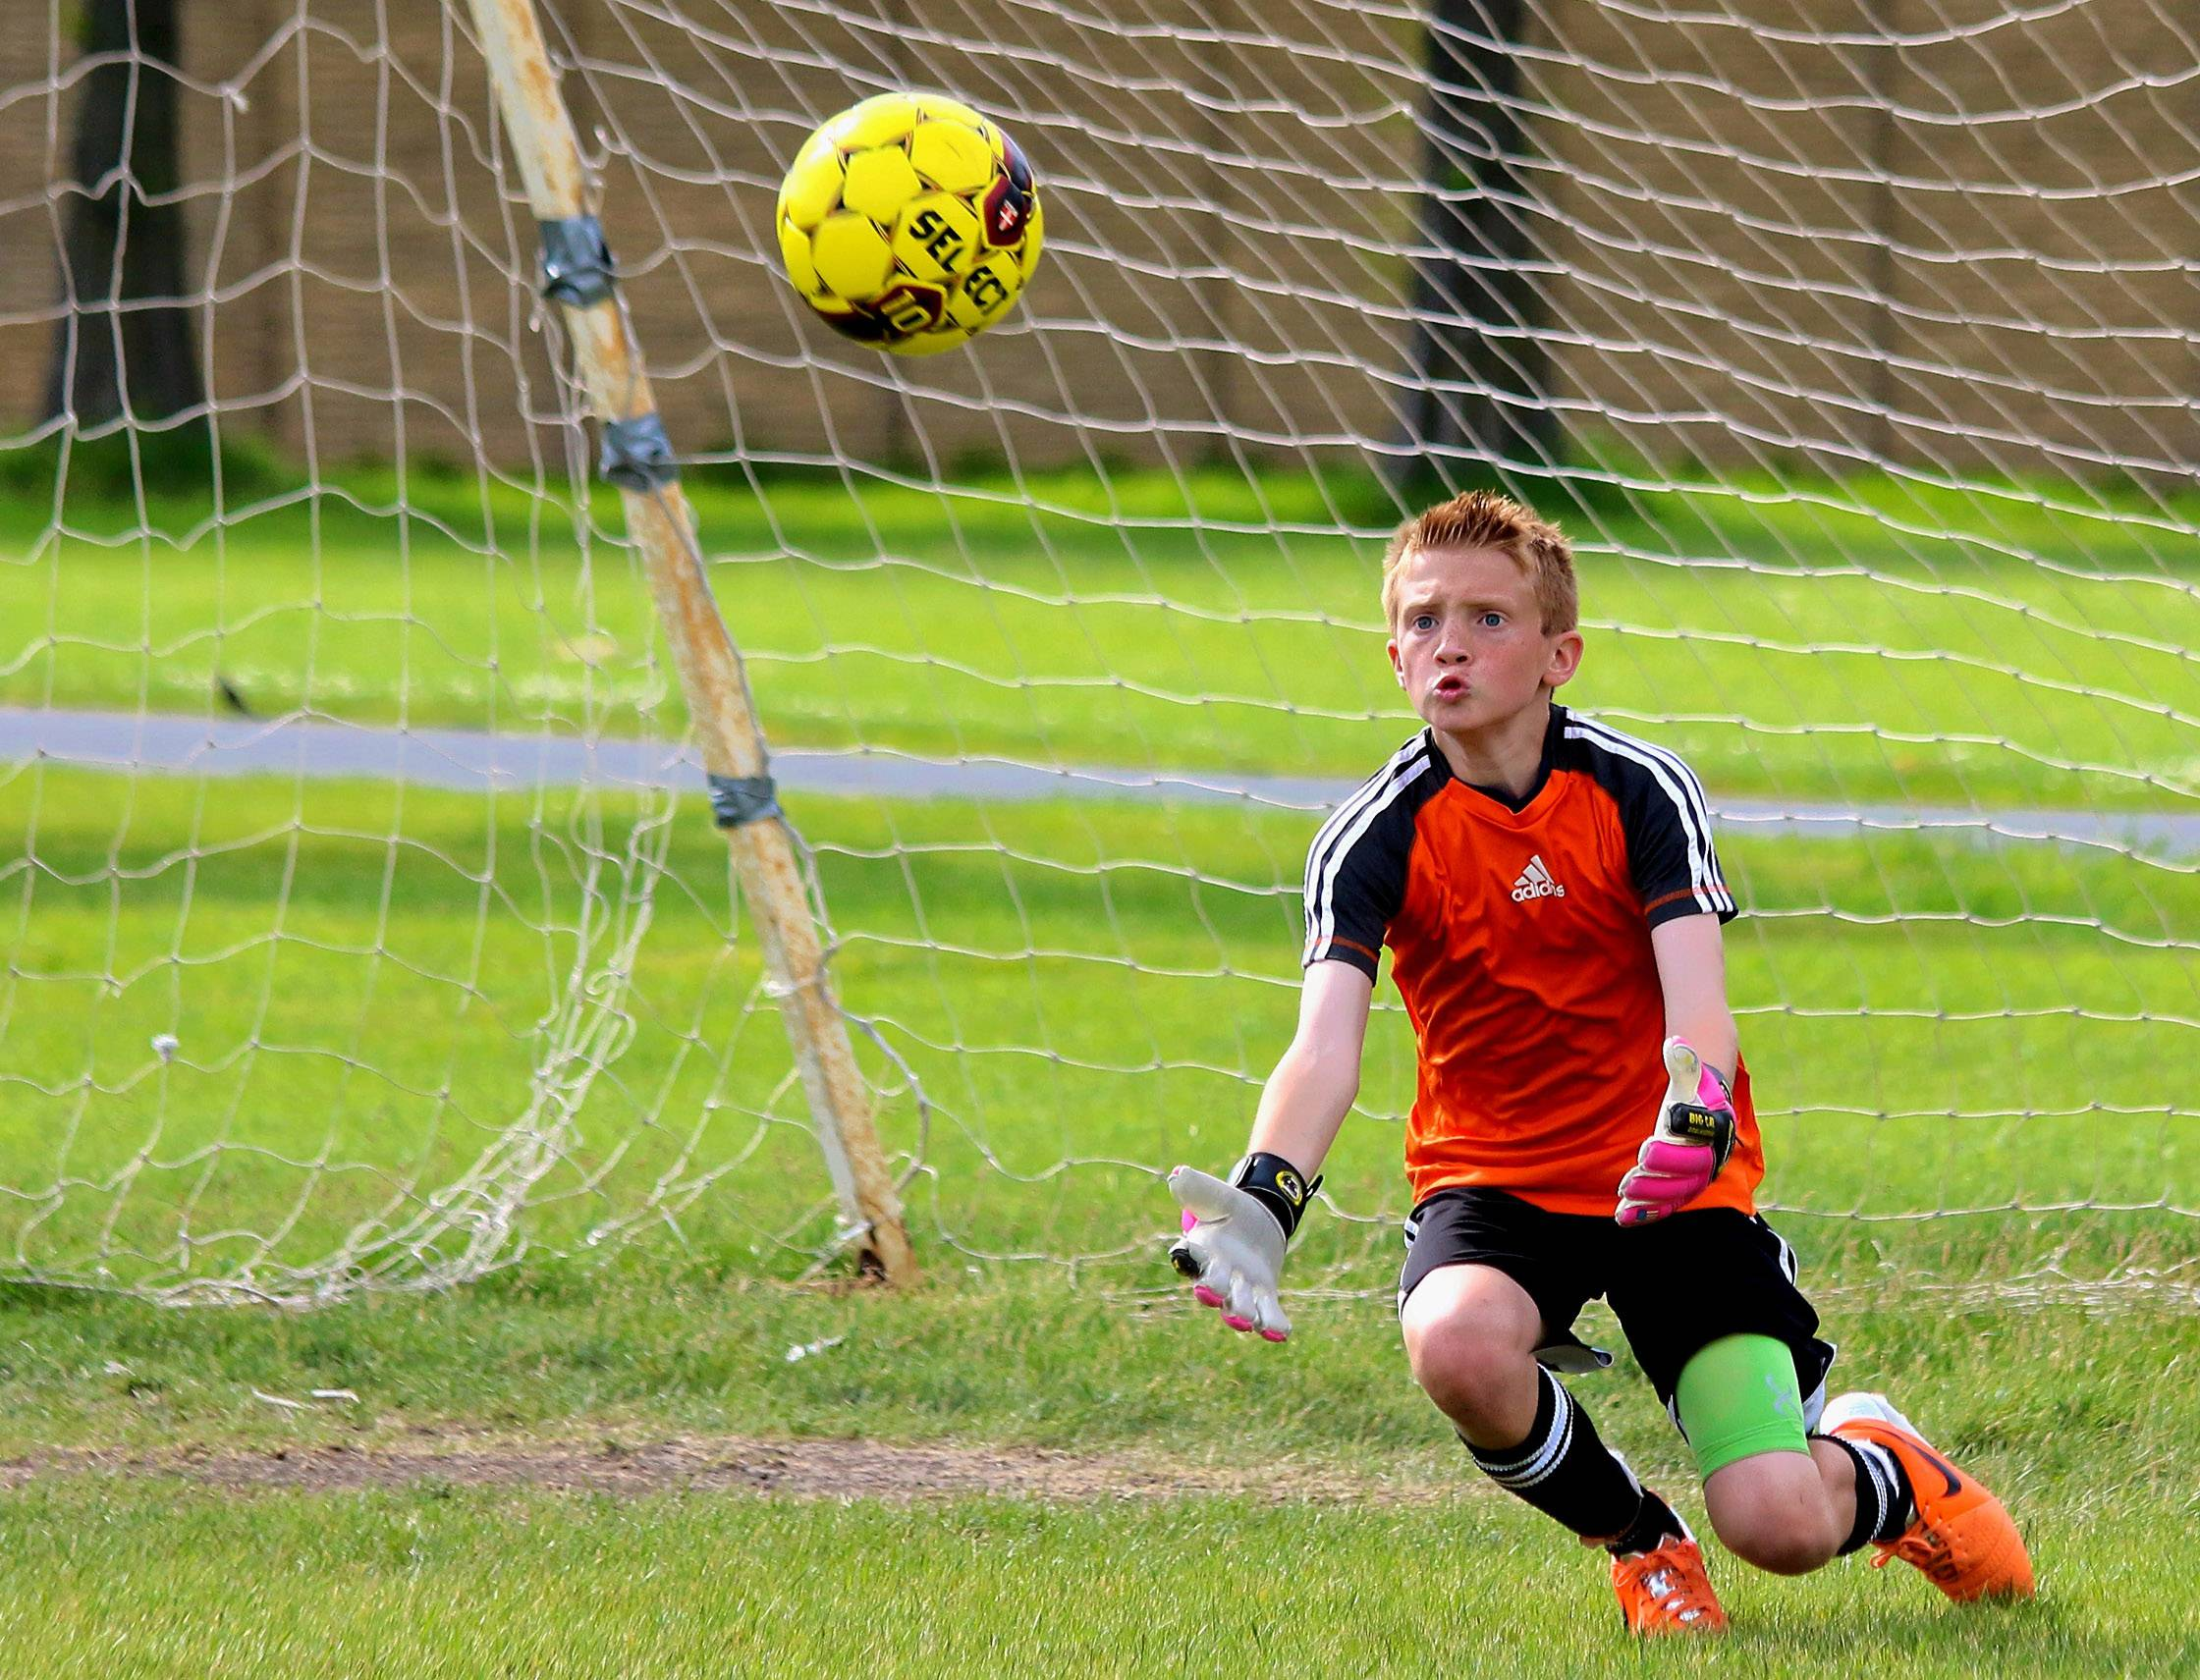 Goalkeeper Trevor Share focuses on the ball as it heads his way during a recent soccer game.